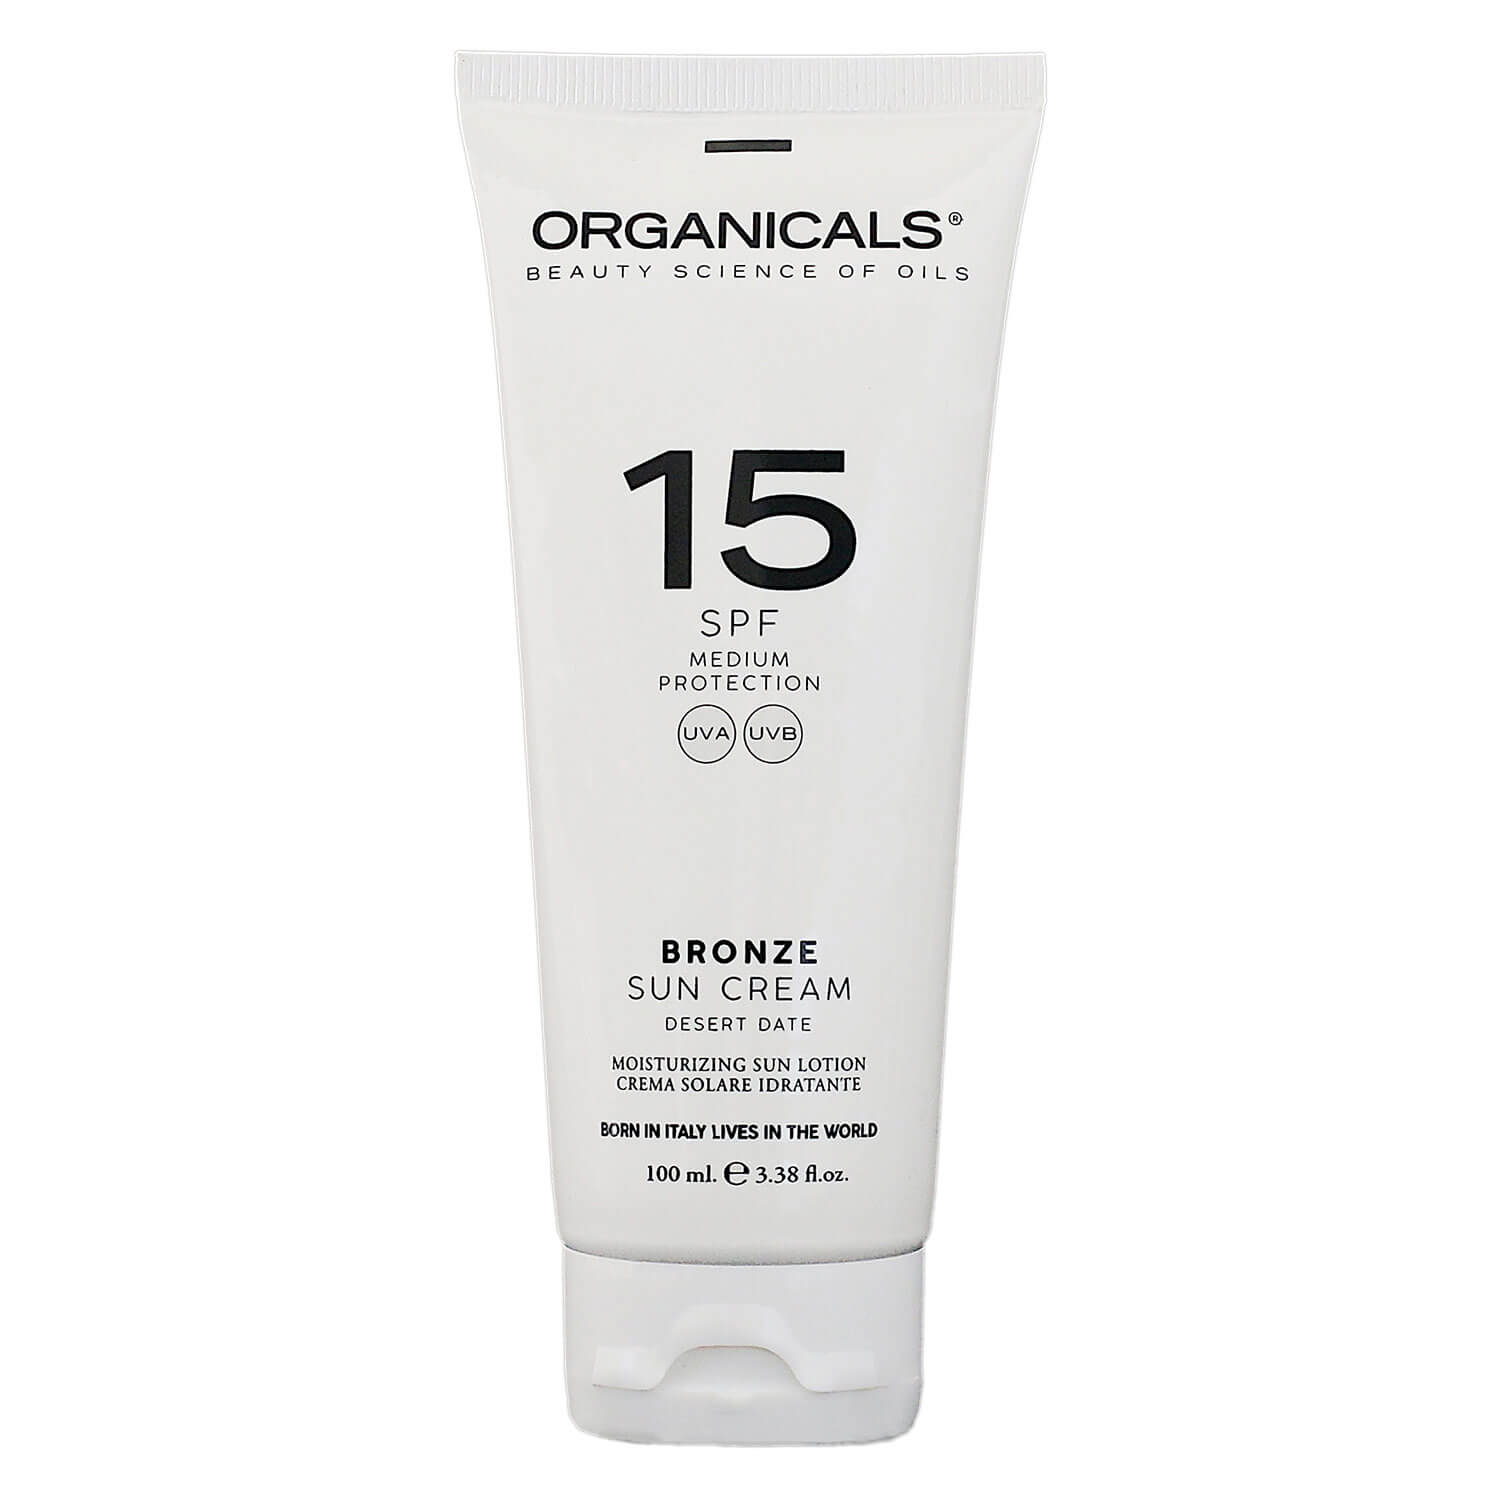 ORGANICALS - Medium Protection Bronze Sun Cream SPF 15